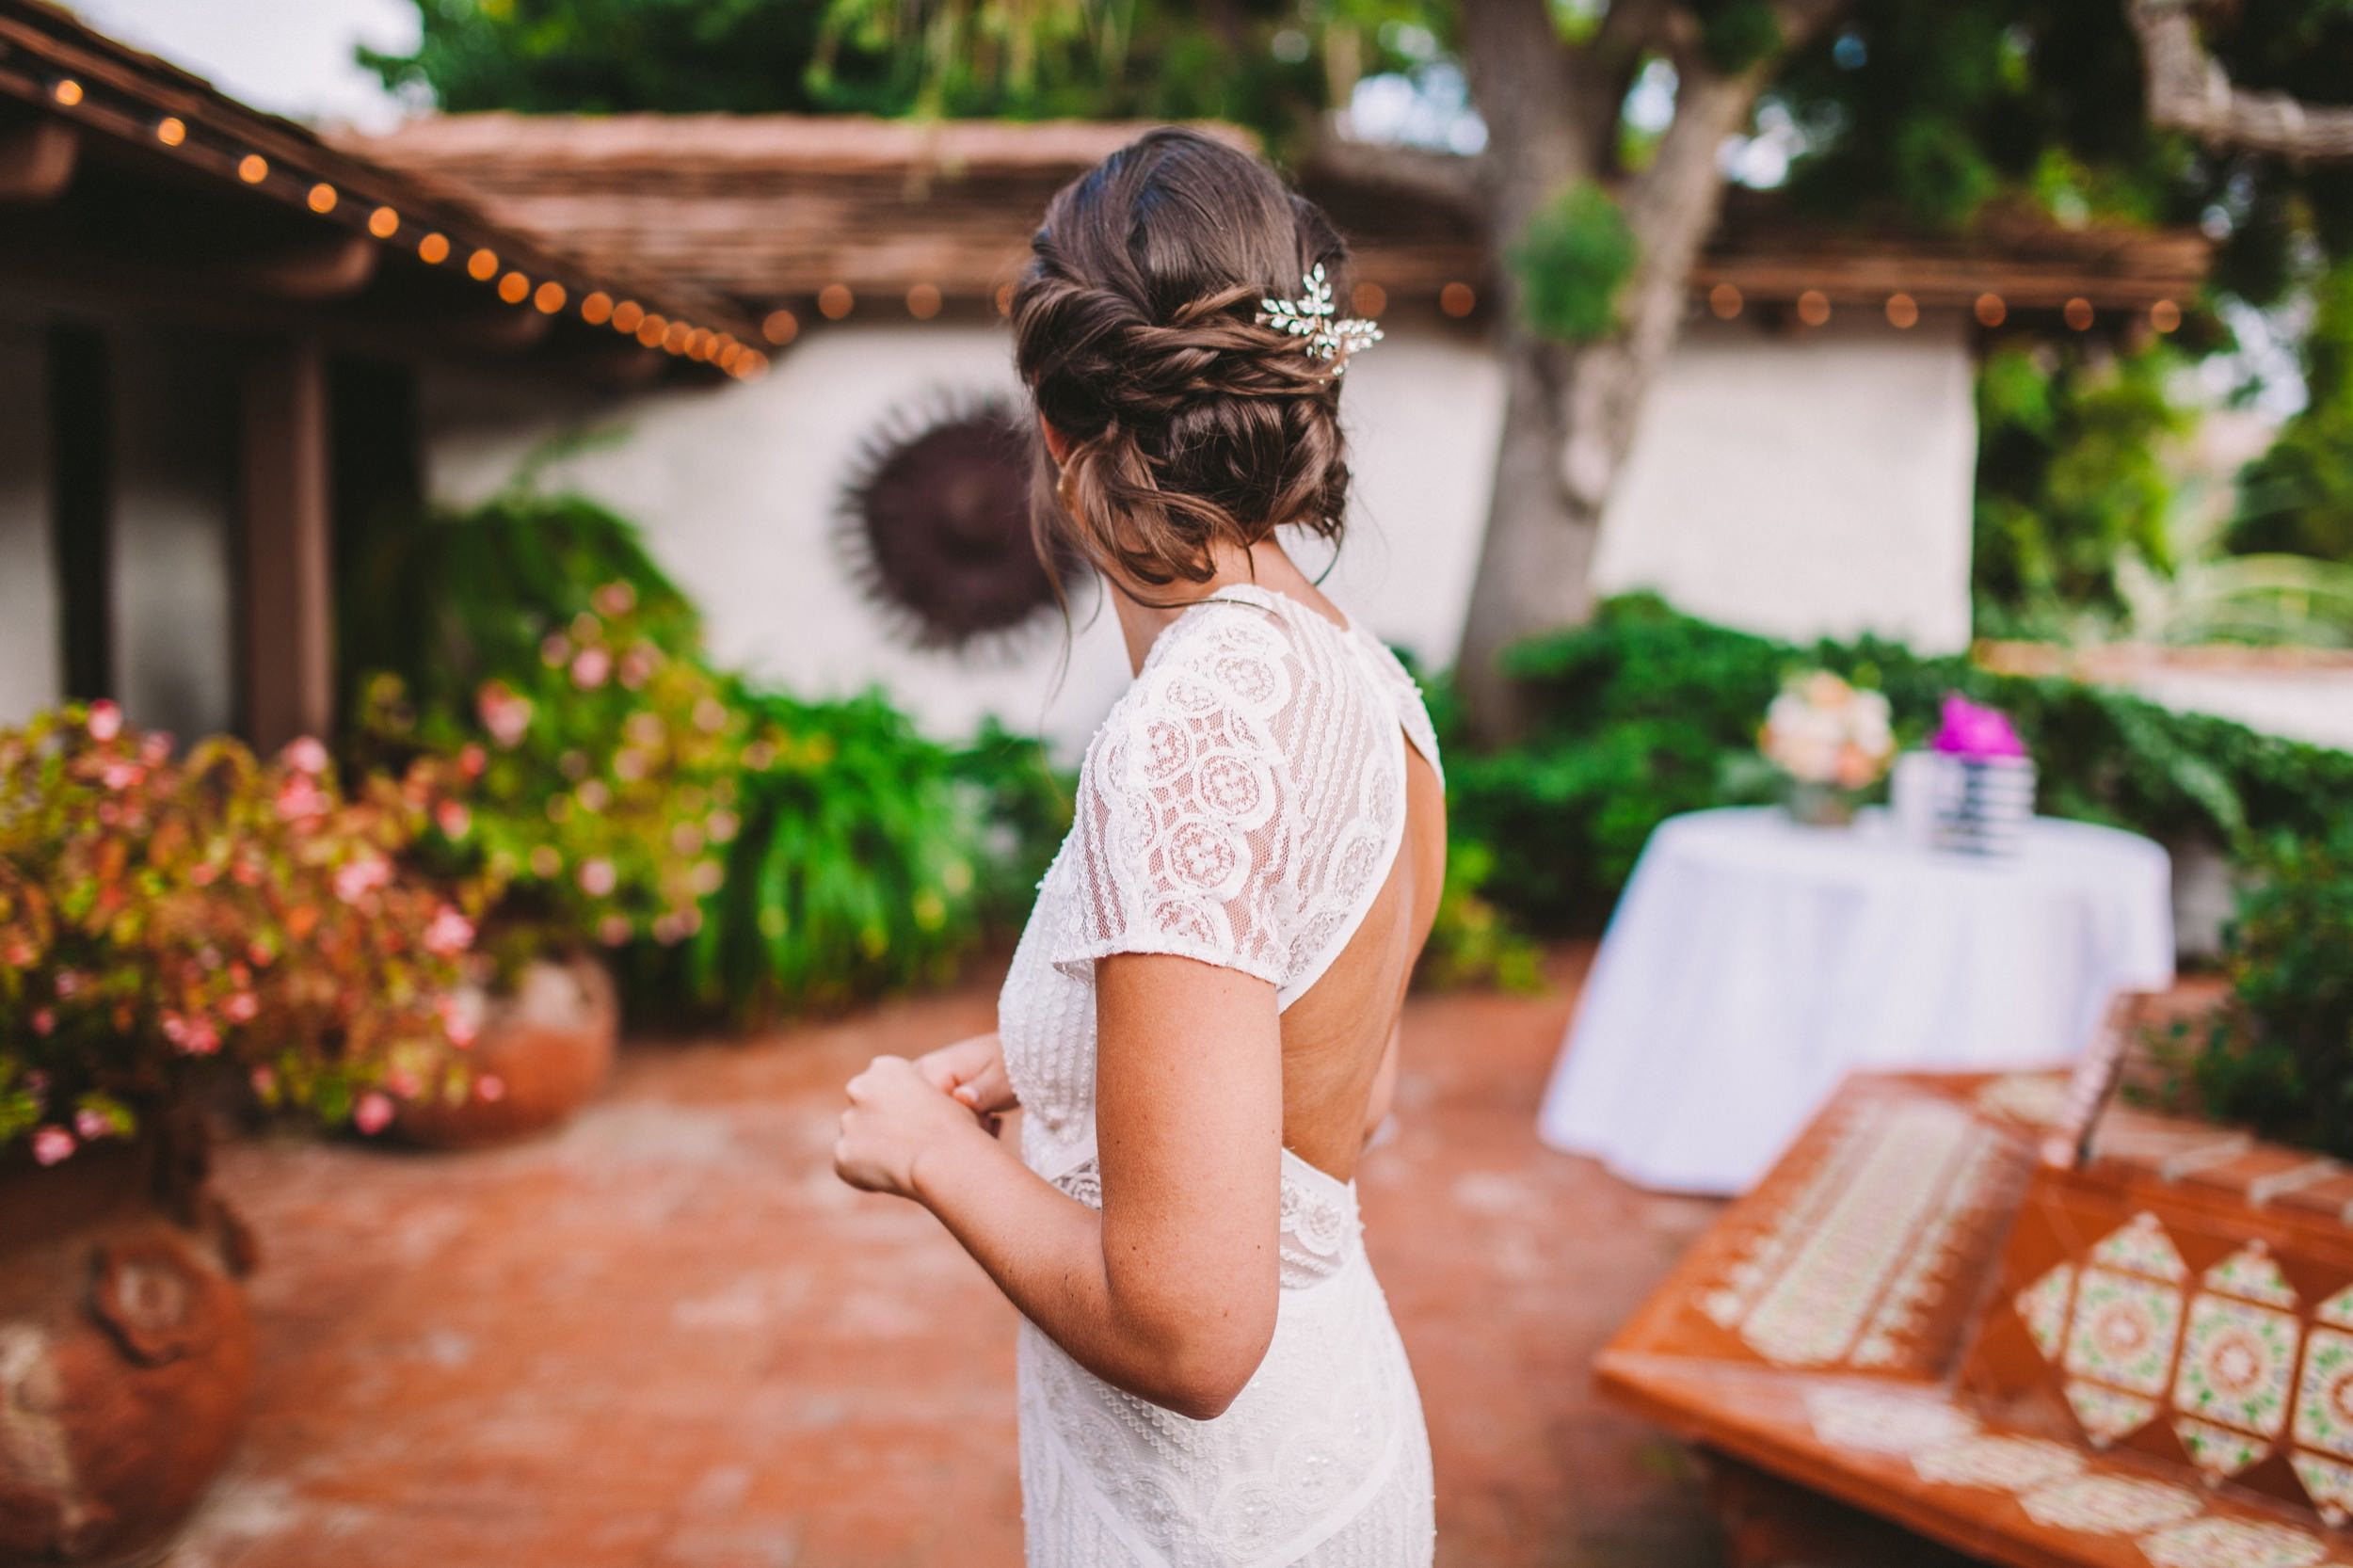 Bride Waiting by Chili Tree at The Old Rancho Entrance in Carlsbad